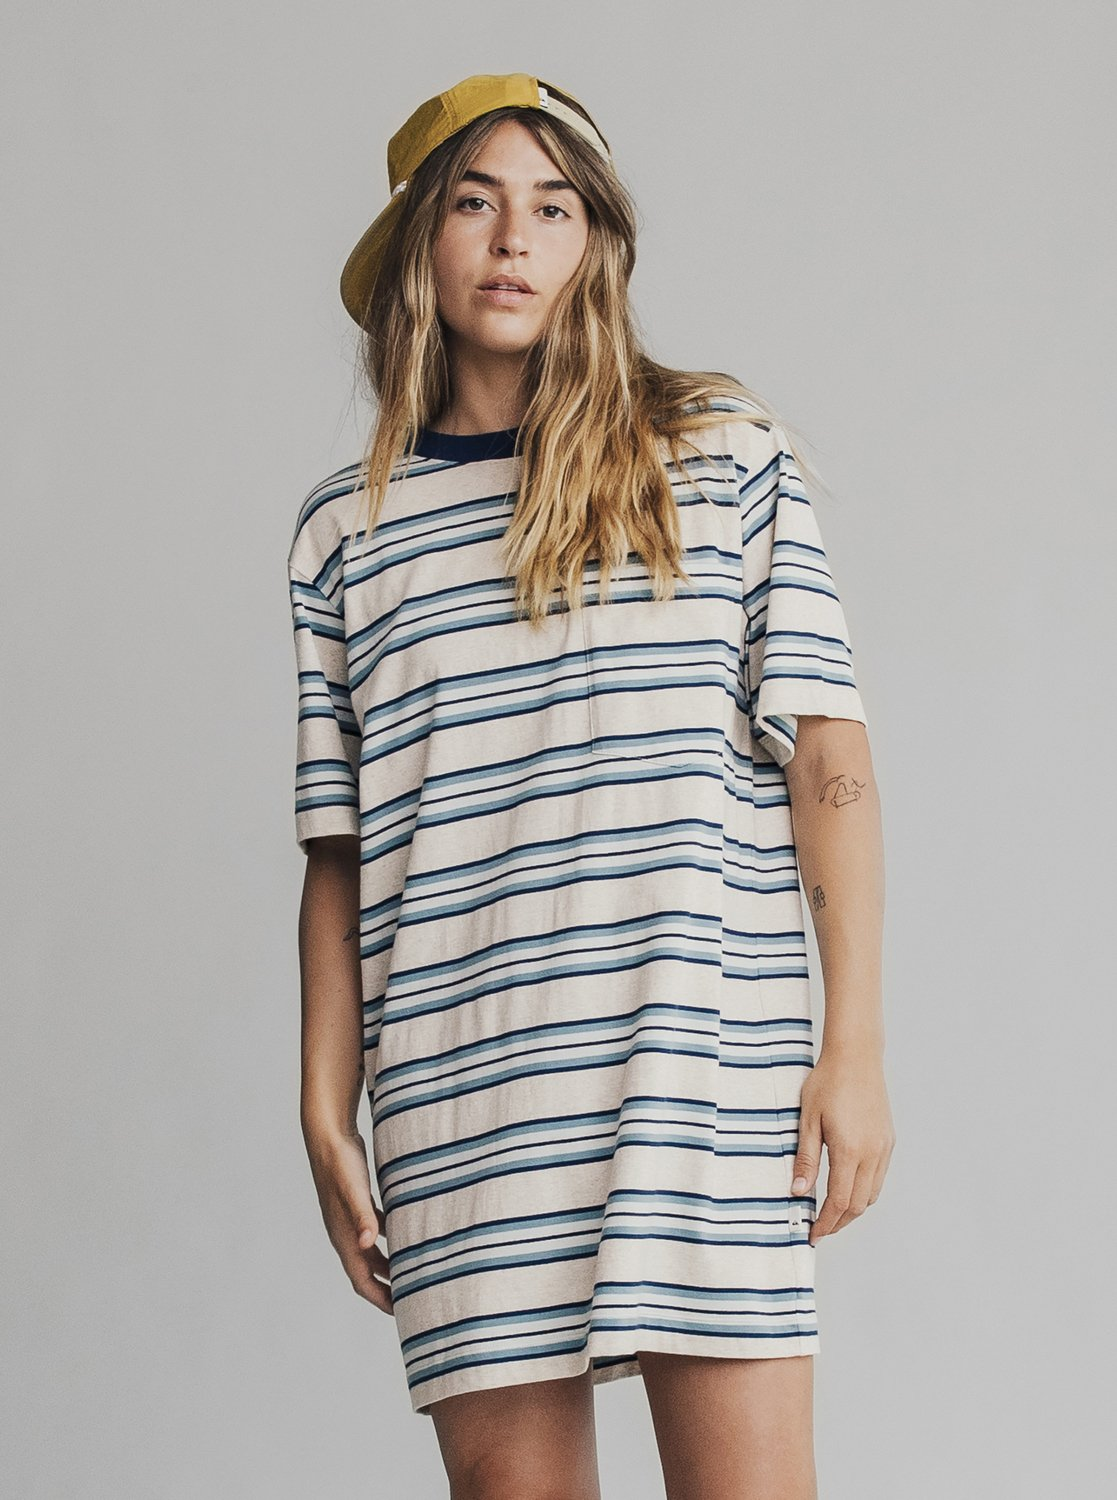 70b0eee93c70 0 Quiksilver Womens - Short Sleeve T-Shirt Dress Blue EQWKD03000 Quiksilver